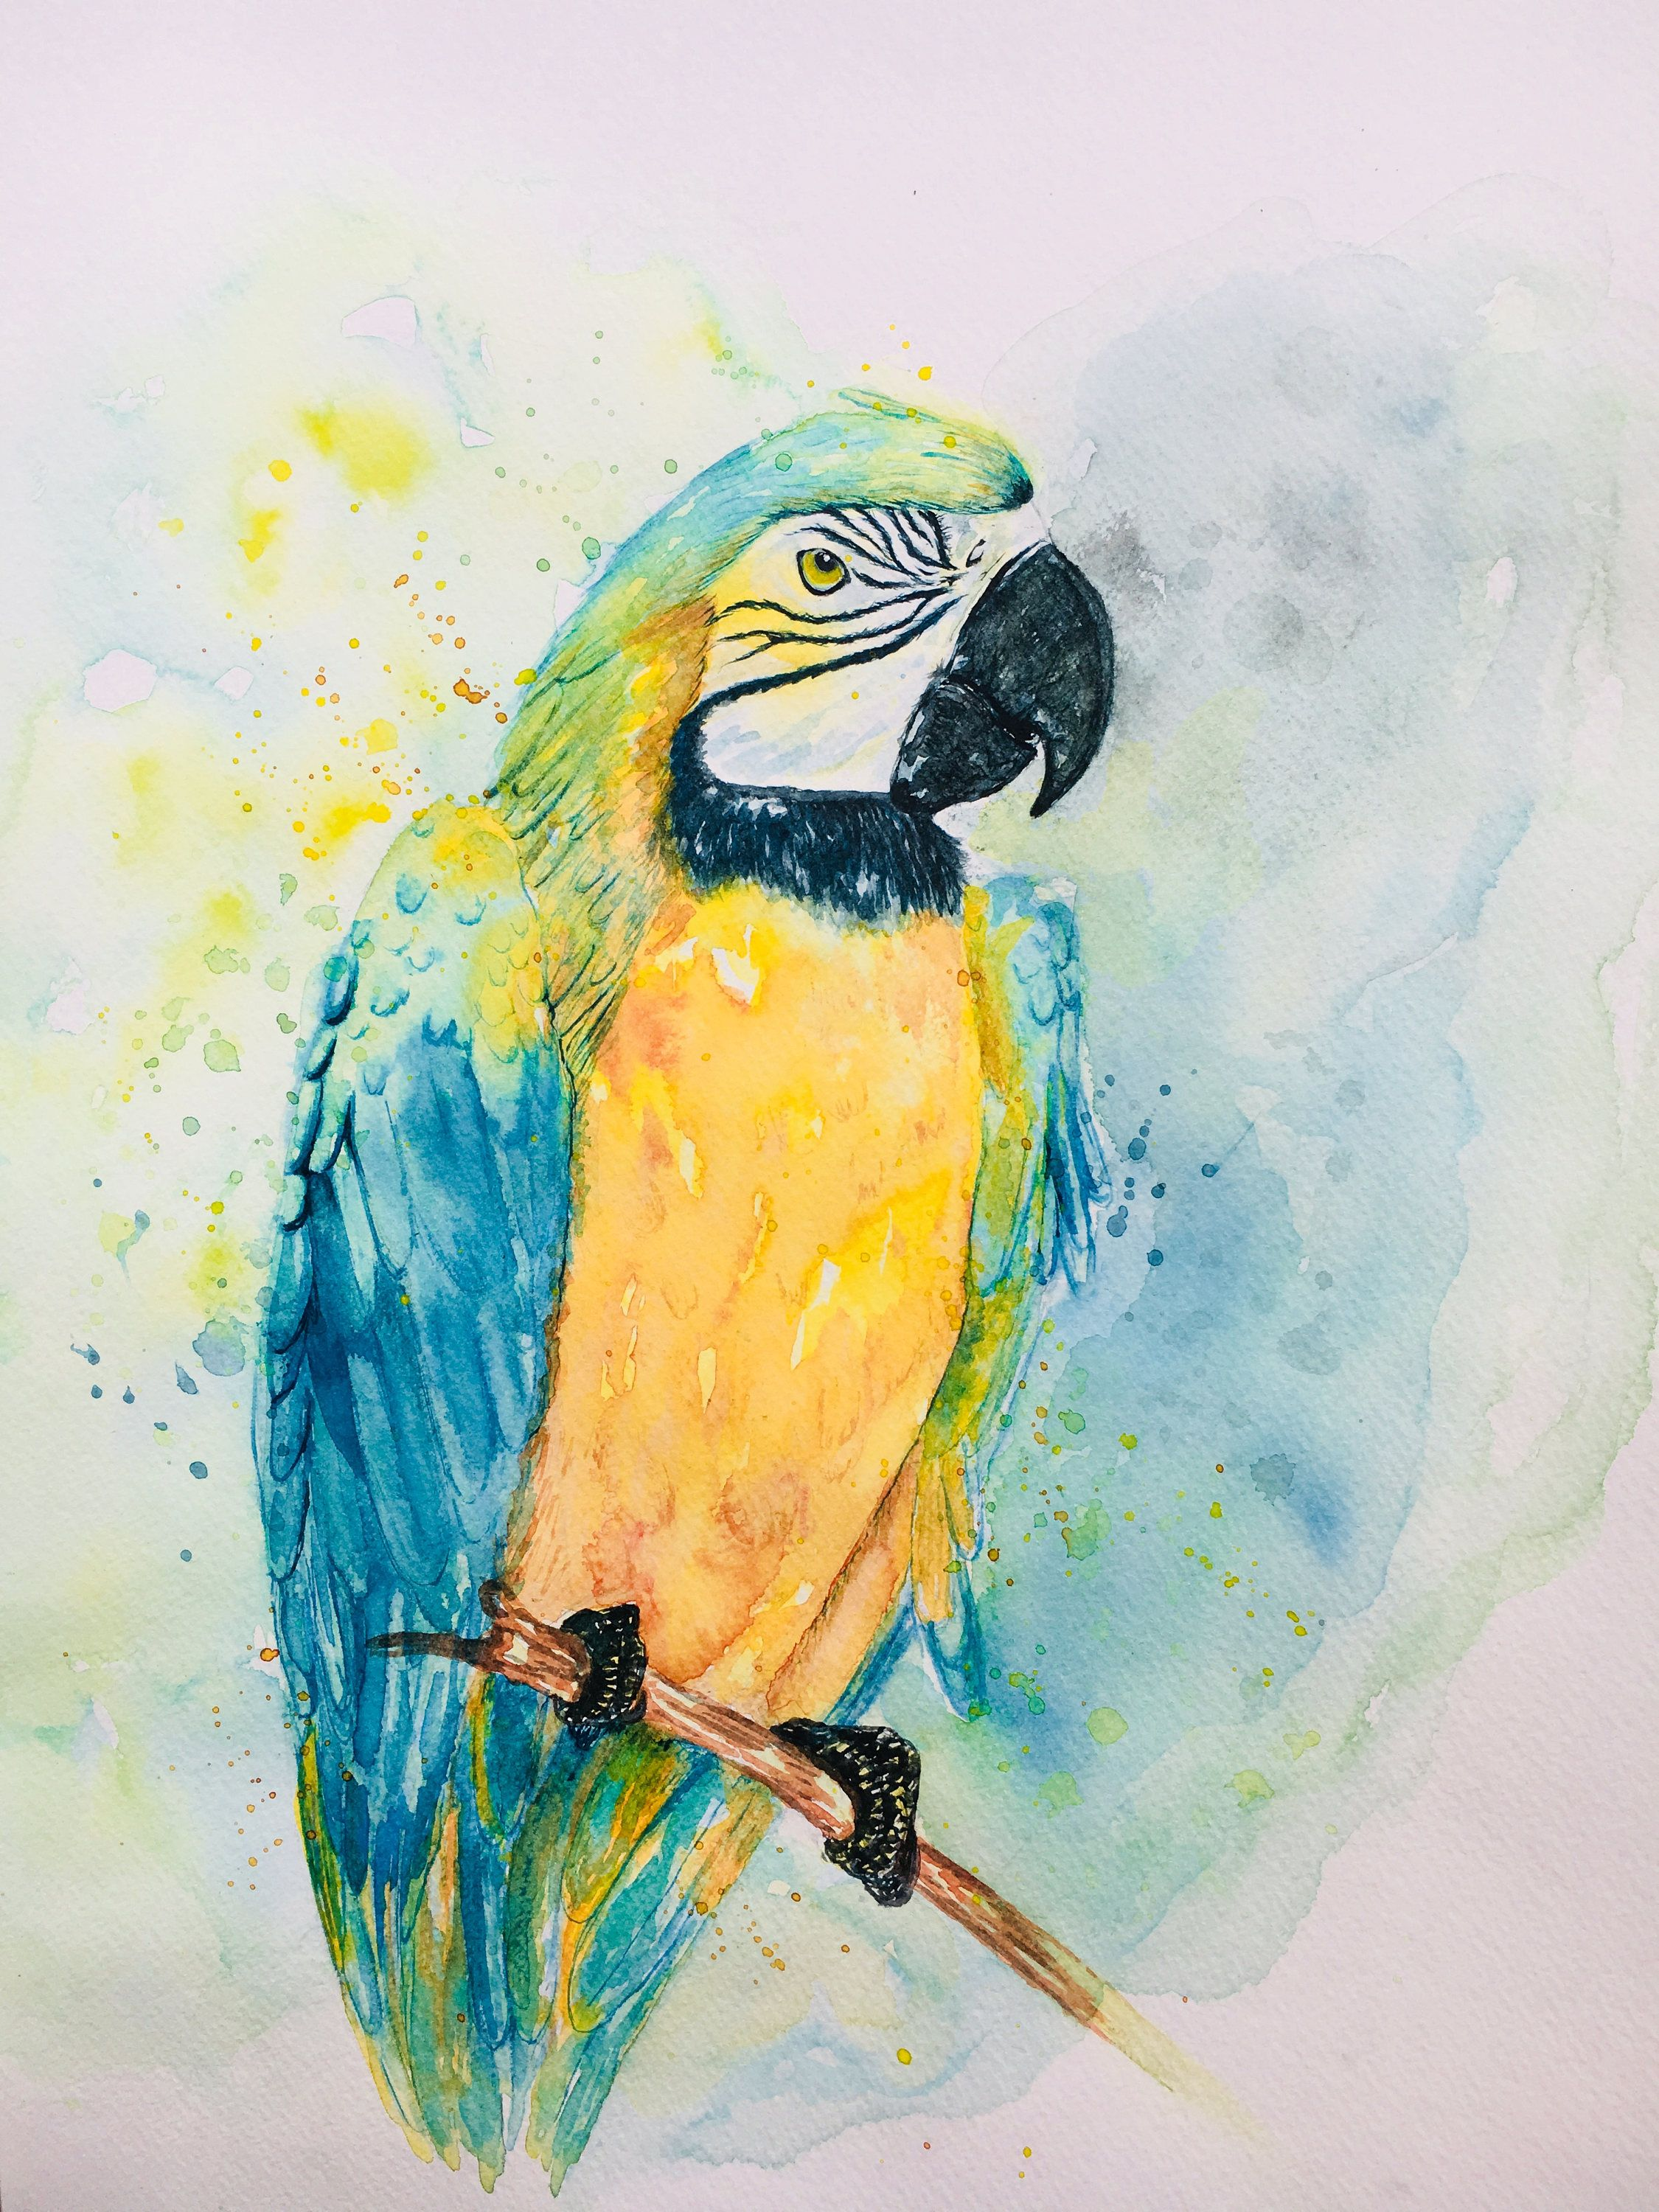 Parrot Art Blue And Yellow Watercolor Splash Design Dessin Perroquet